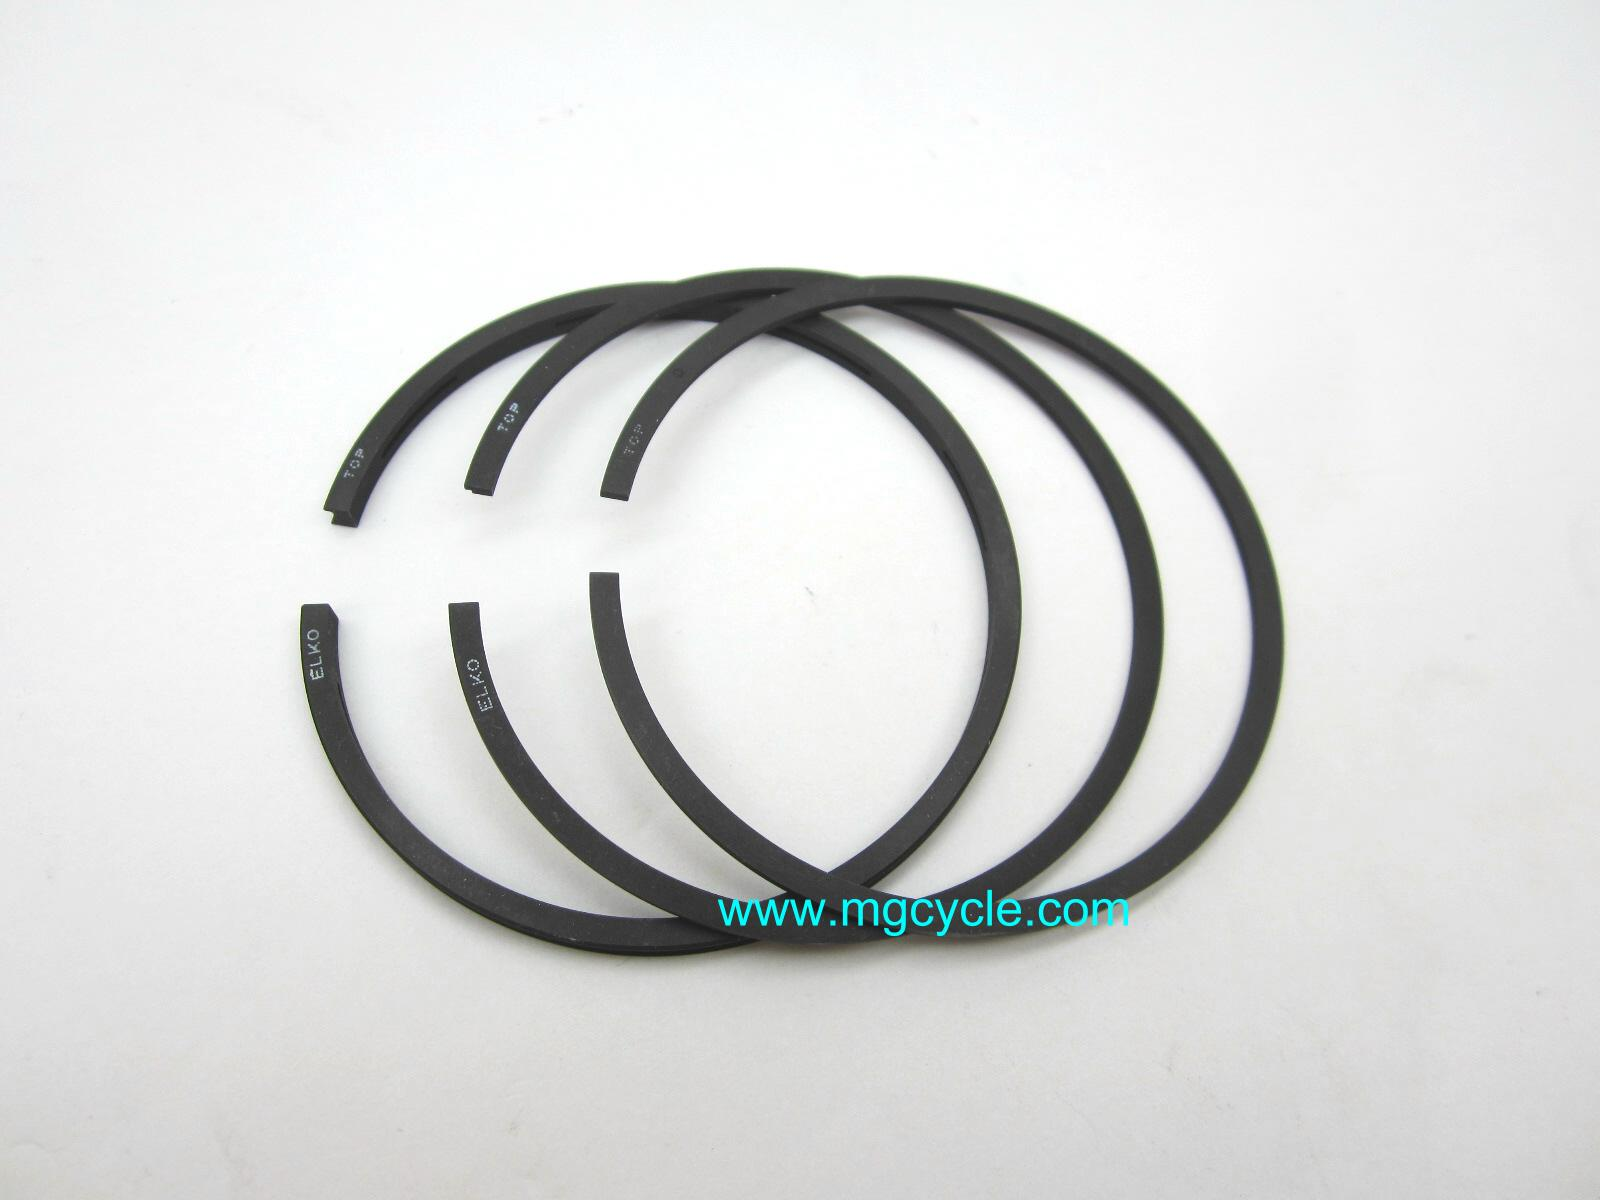 Piston ring set V50 V50 II V50 III Monza GU19060650